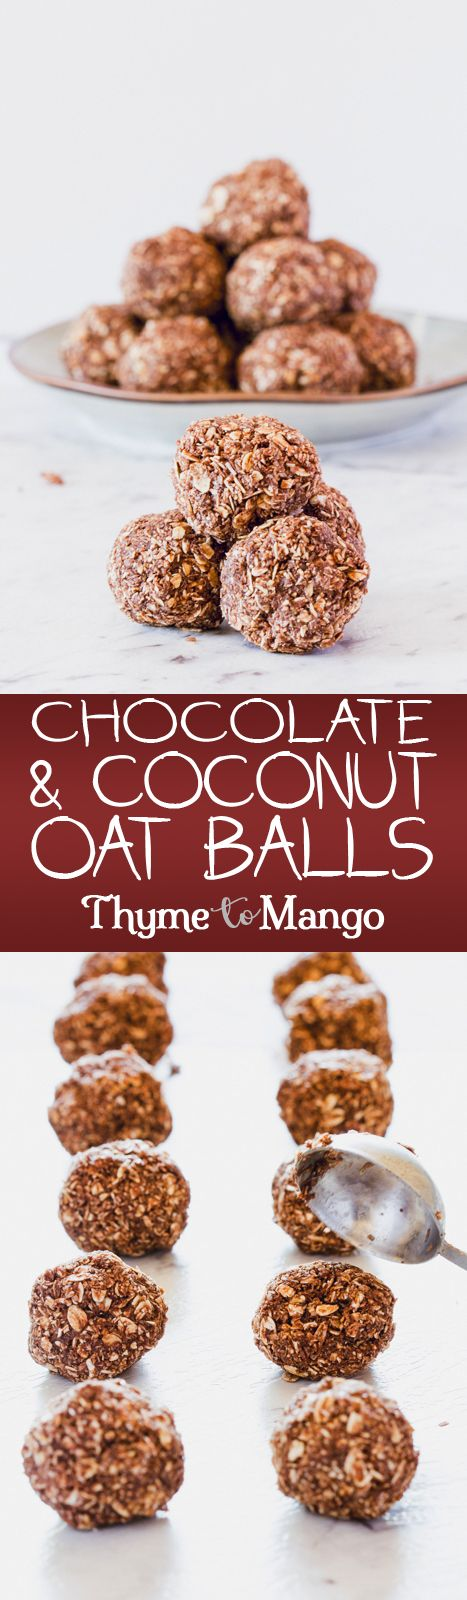 With only 4 ingredients, and 5 minutes to prepare, these chocolate and coconut oat balls are the perfect in-between-meal snack